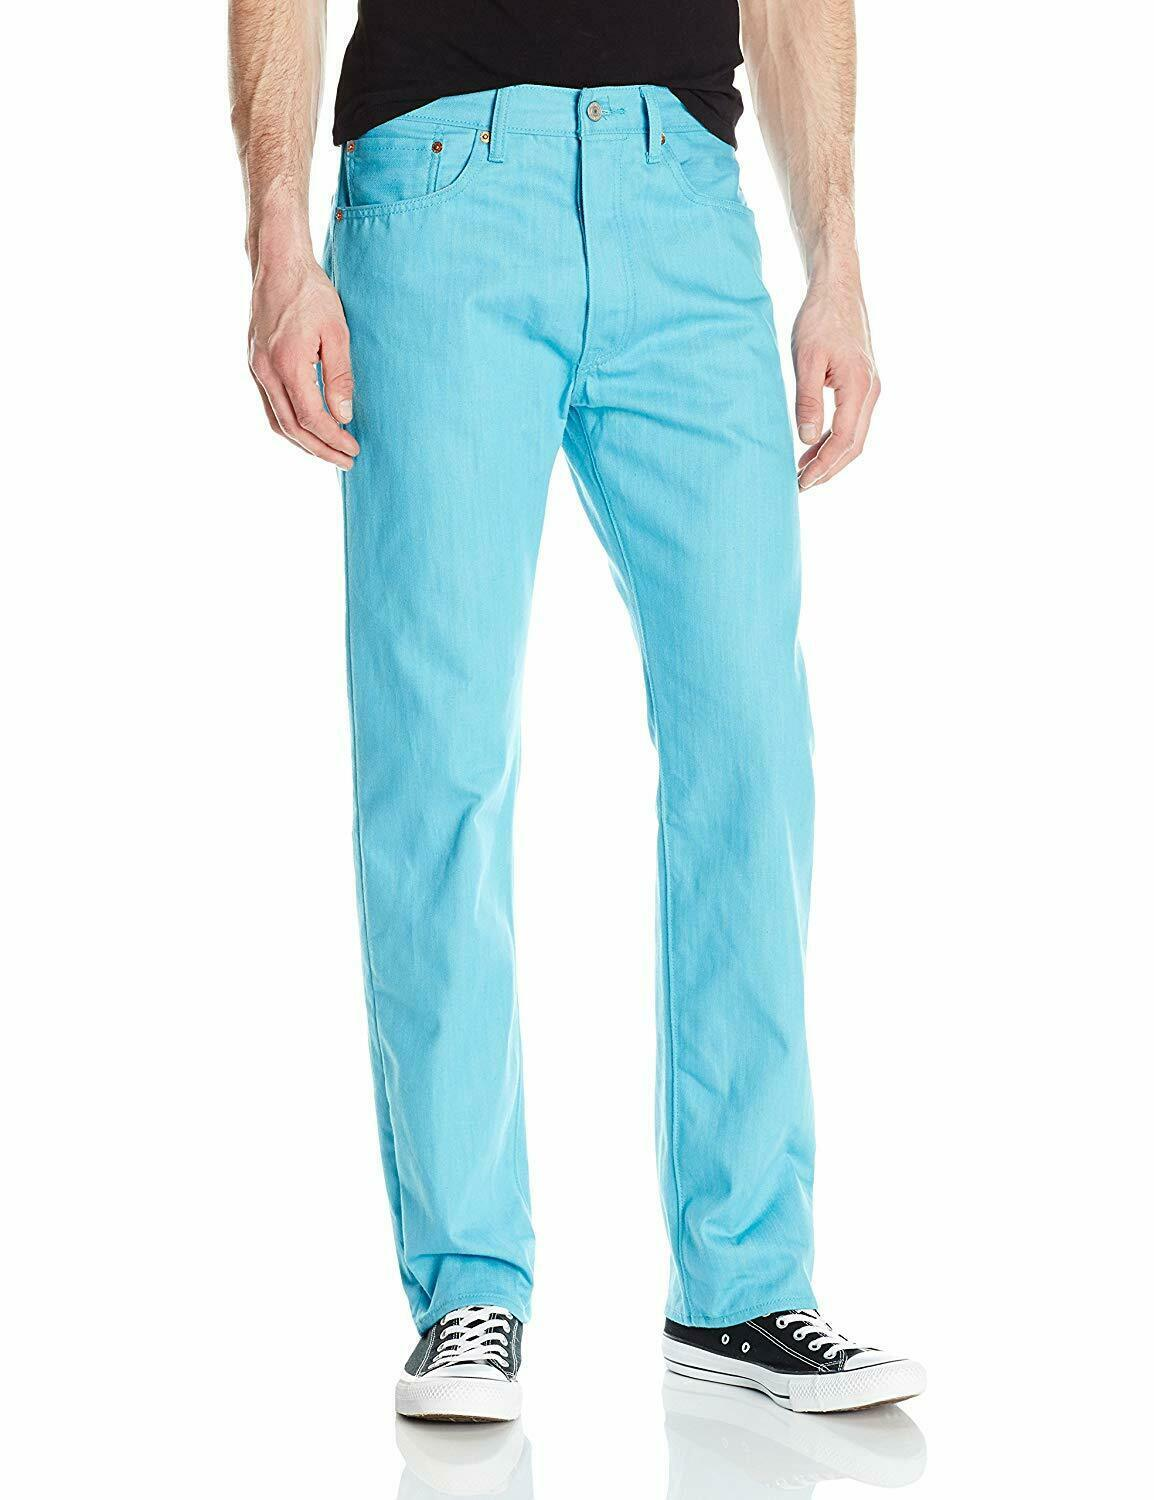 Levi's Strauss 501 Men's Shrink To Fit Straight Leg Jeans Button Fly 501-2406